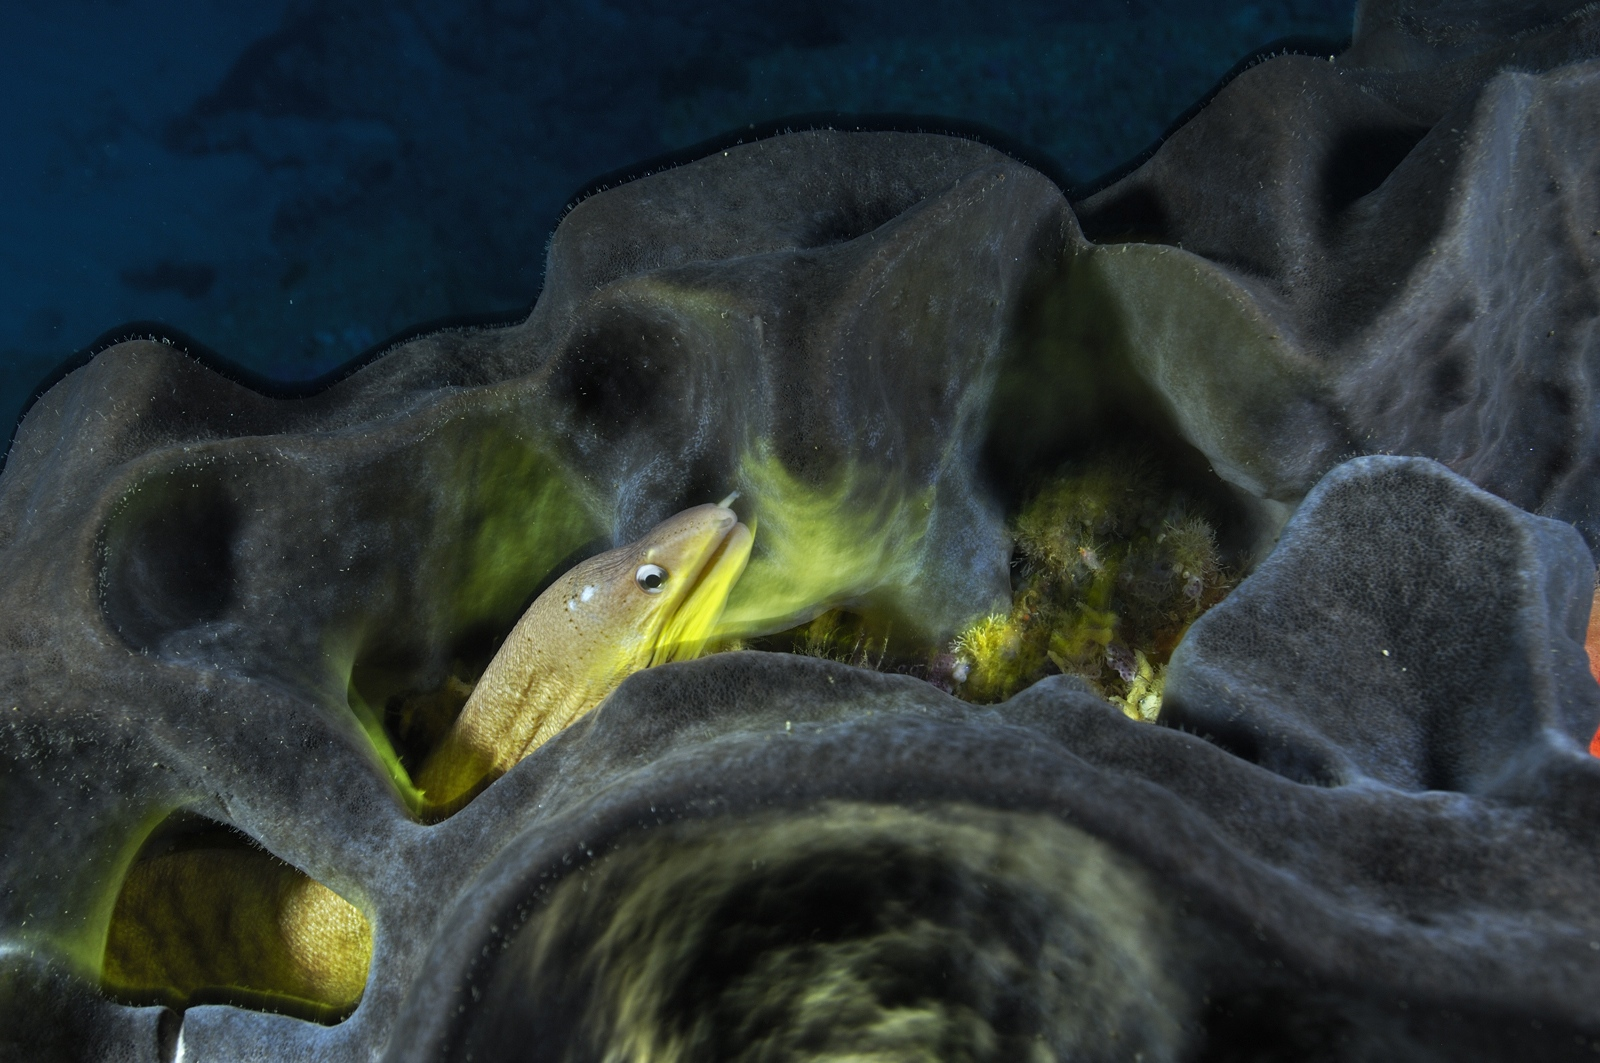 A yellow moray eel inside of a sea sponge in the waters off of Poor Knights Islands, New Zealand<div class='credit'><strong>Credit:</strong> A yellow moray eel inside of a sea sponge in the waters off of Poor Knights Islands, New Zealand</div>